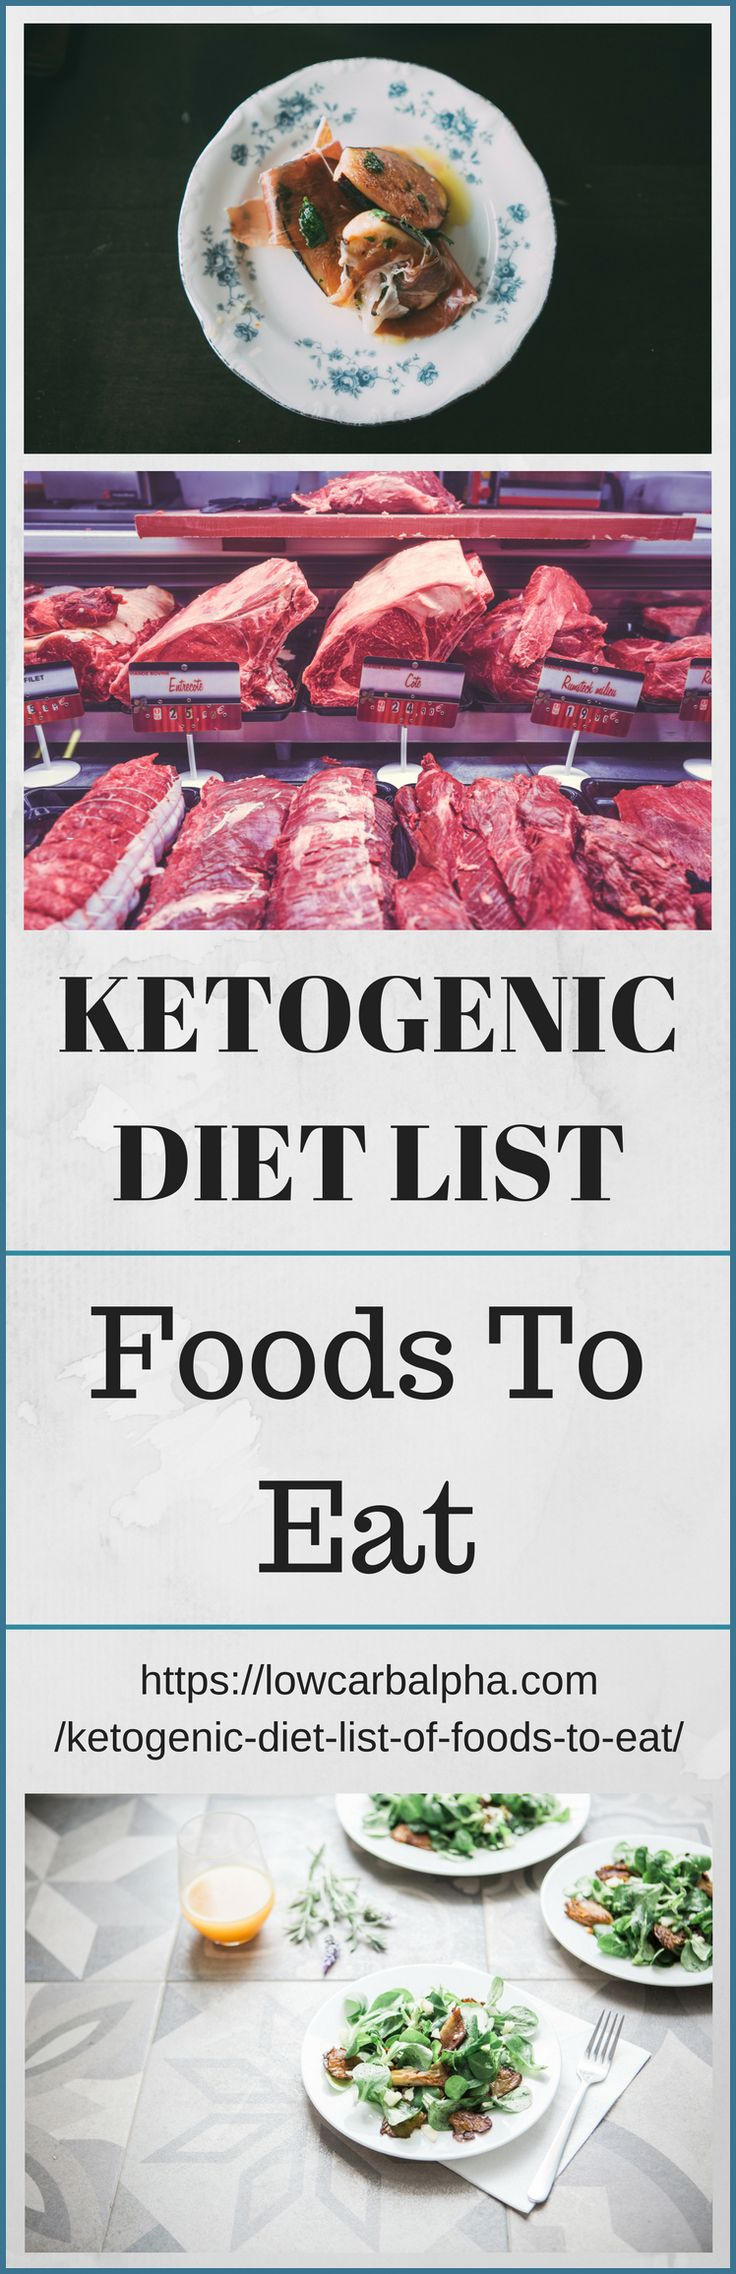 Ketogenic Diet List Of Foods To Eat https://lowcarbalpha.com/ketogenic-diet-list-of-foods-to-eat/ Know the different kinds. There are millions of people who would like to go on a diet. Diets can vary in different ways. A Keto LCHF lowcarb high-fat diet allows you to eat adequate amounts of protein, high fats and low carbs so the body burns ketones for energy instead of glucose (carbohydrates) Heres a small keto grocery list for your next shop #ketogenicdiet #lowcarbhighfat #ketofood #fatloss